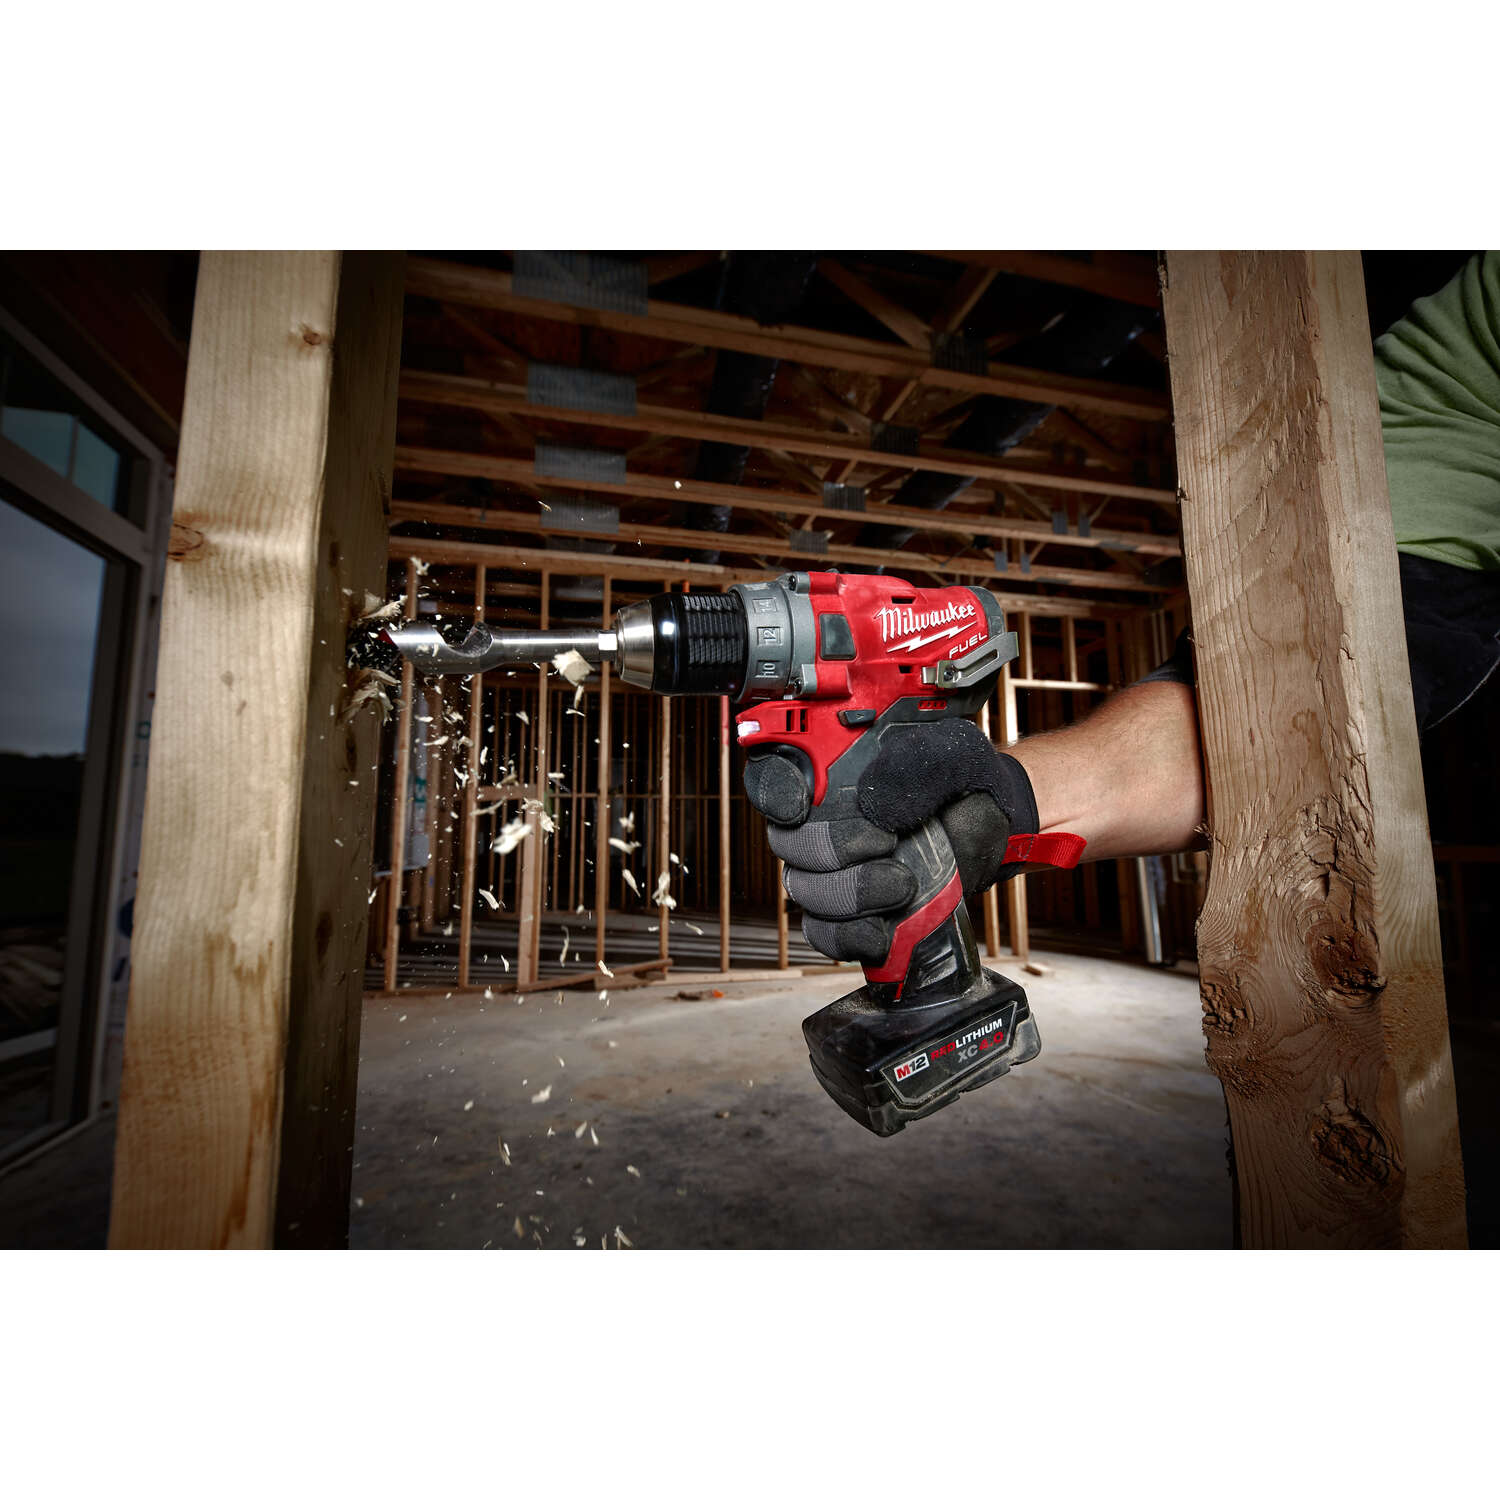 Milwaukee  M12 FUEL  12 volt 1/2 in. Brushless Cordless Drill/Driver  1700 rpm 2 speed